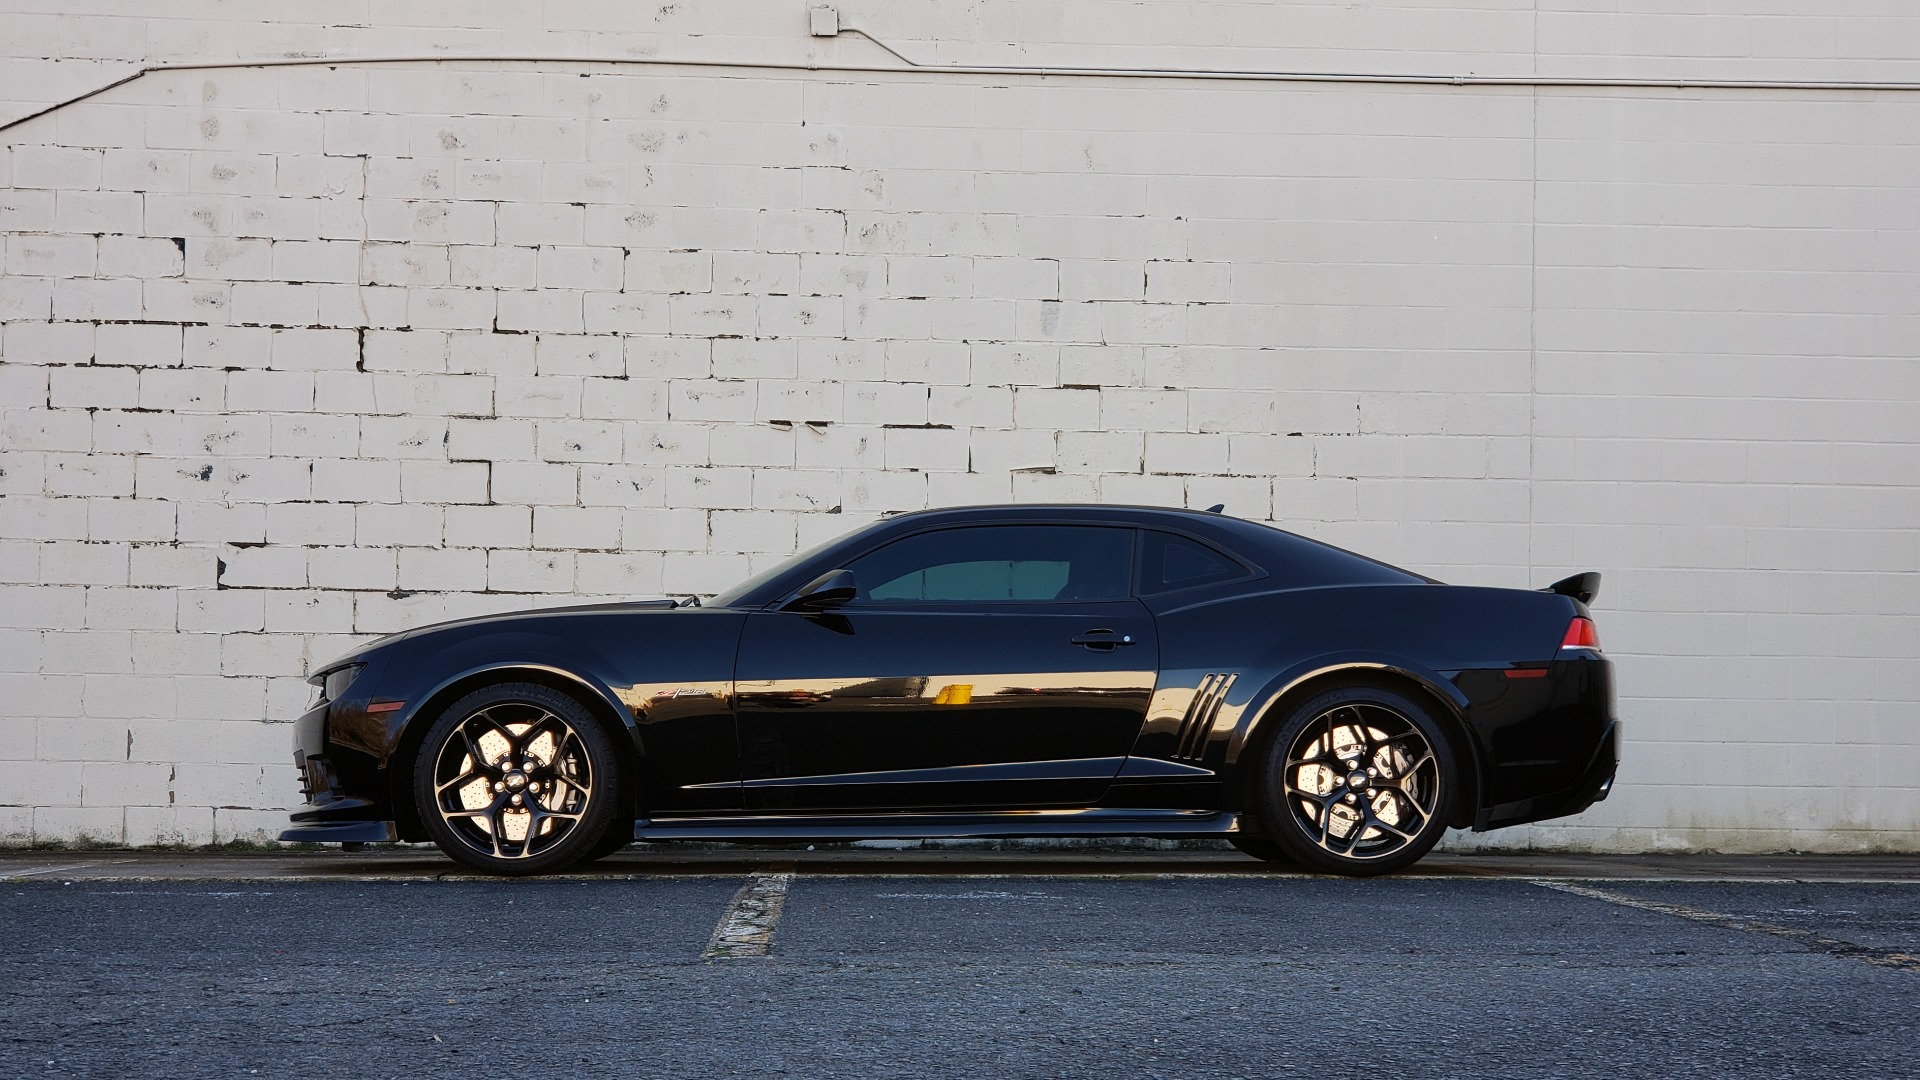 Used 2014 Chevrolet CAMARO Z/28 / 427 7.0L V8 505HP / RADIO / AIR CONDITIONING for sale Sold at Formula Imports in Charlotte NC 28227 47